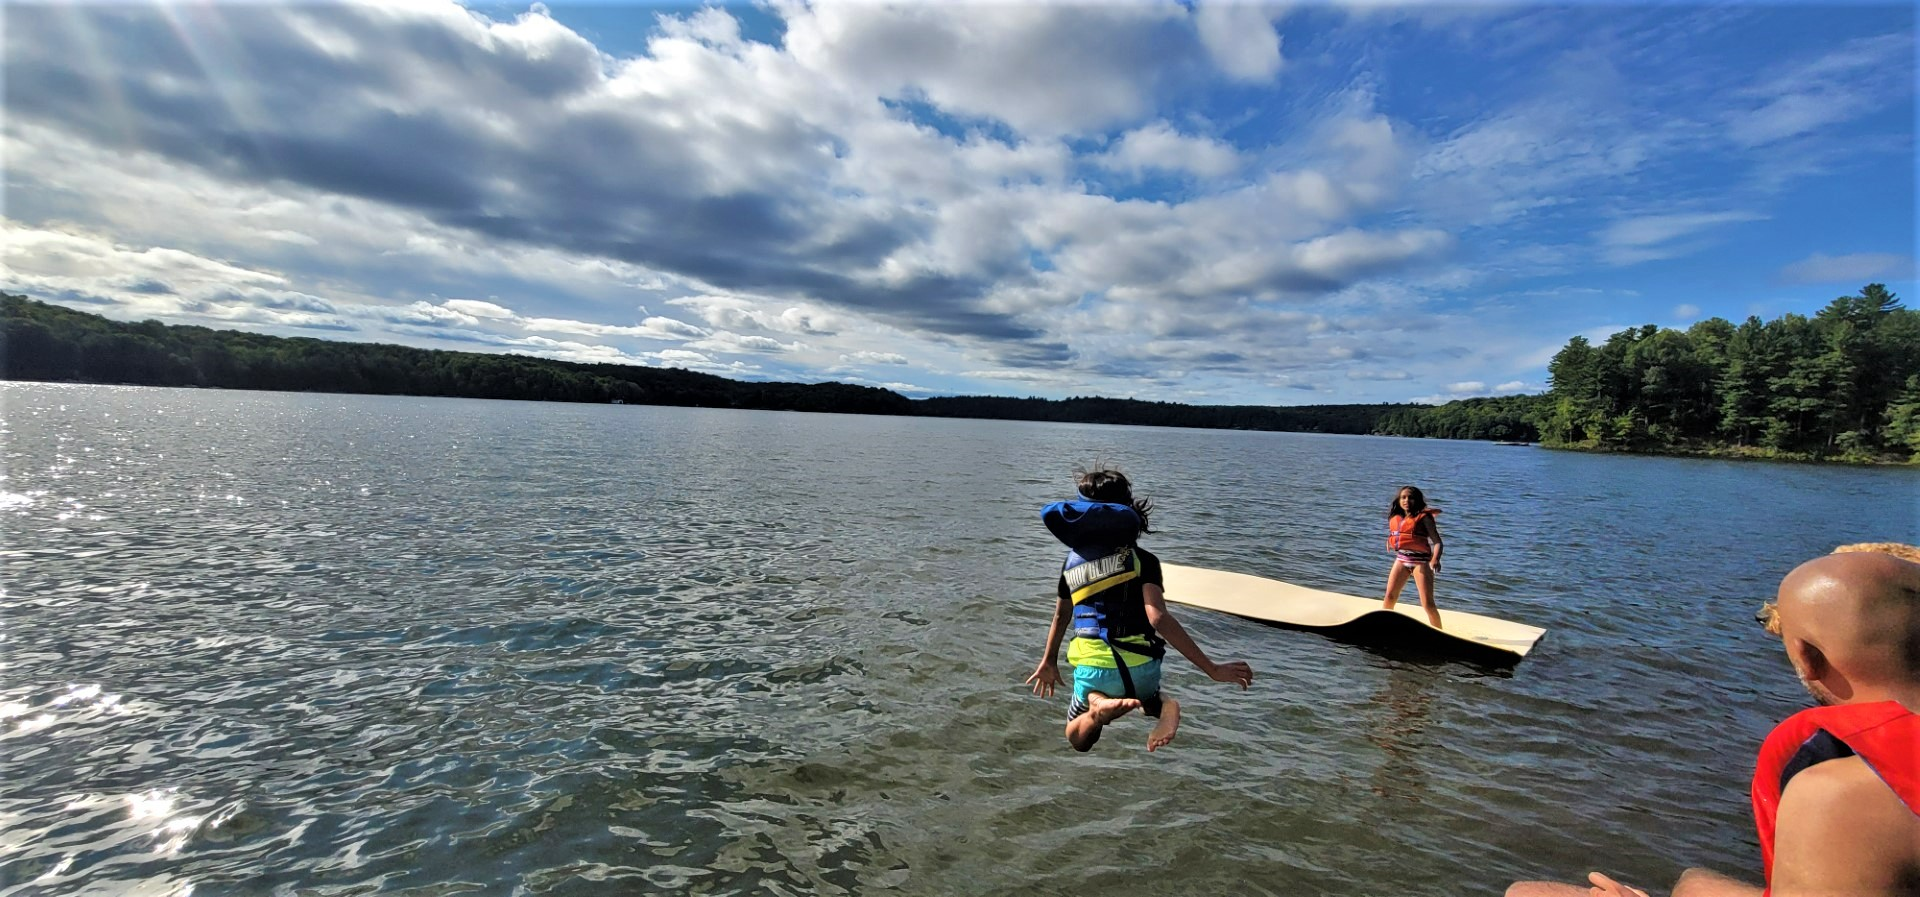 children jumping into lake on a clear day with white clouds and blue skies